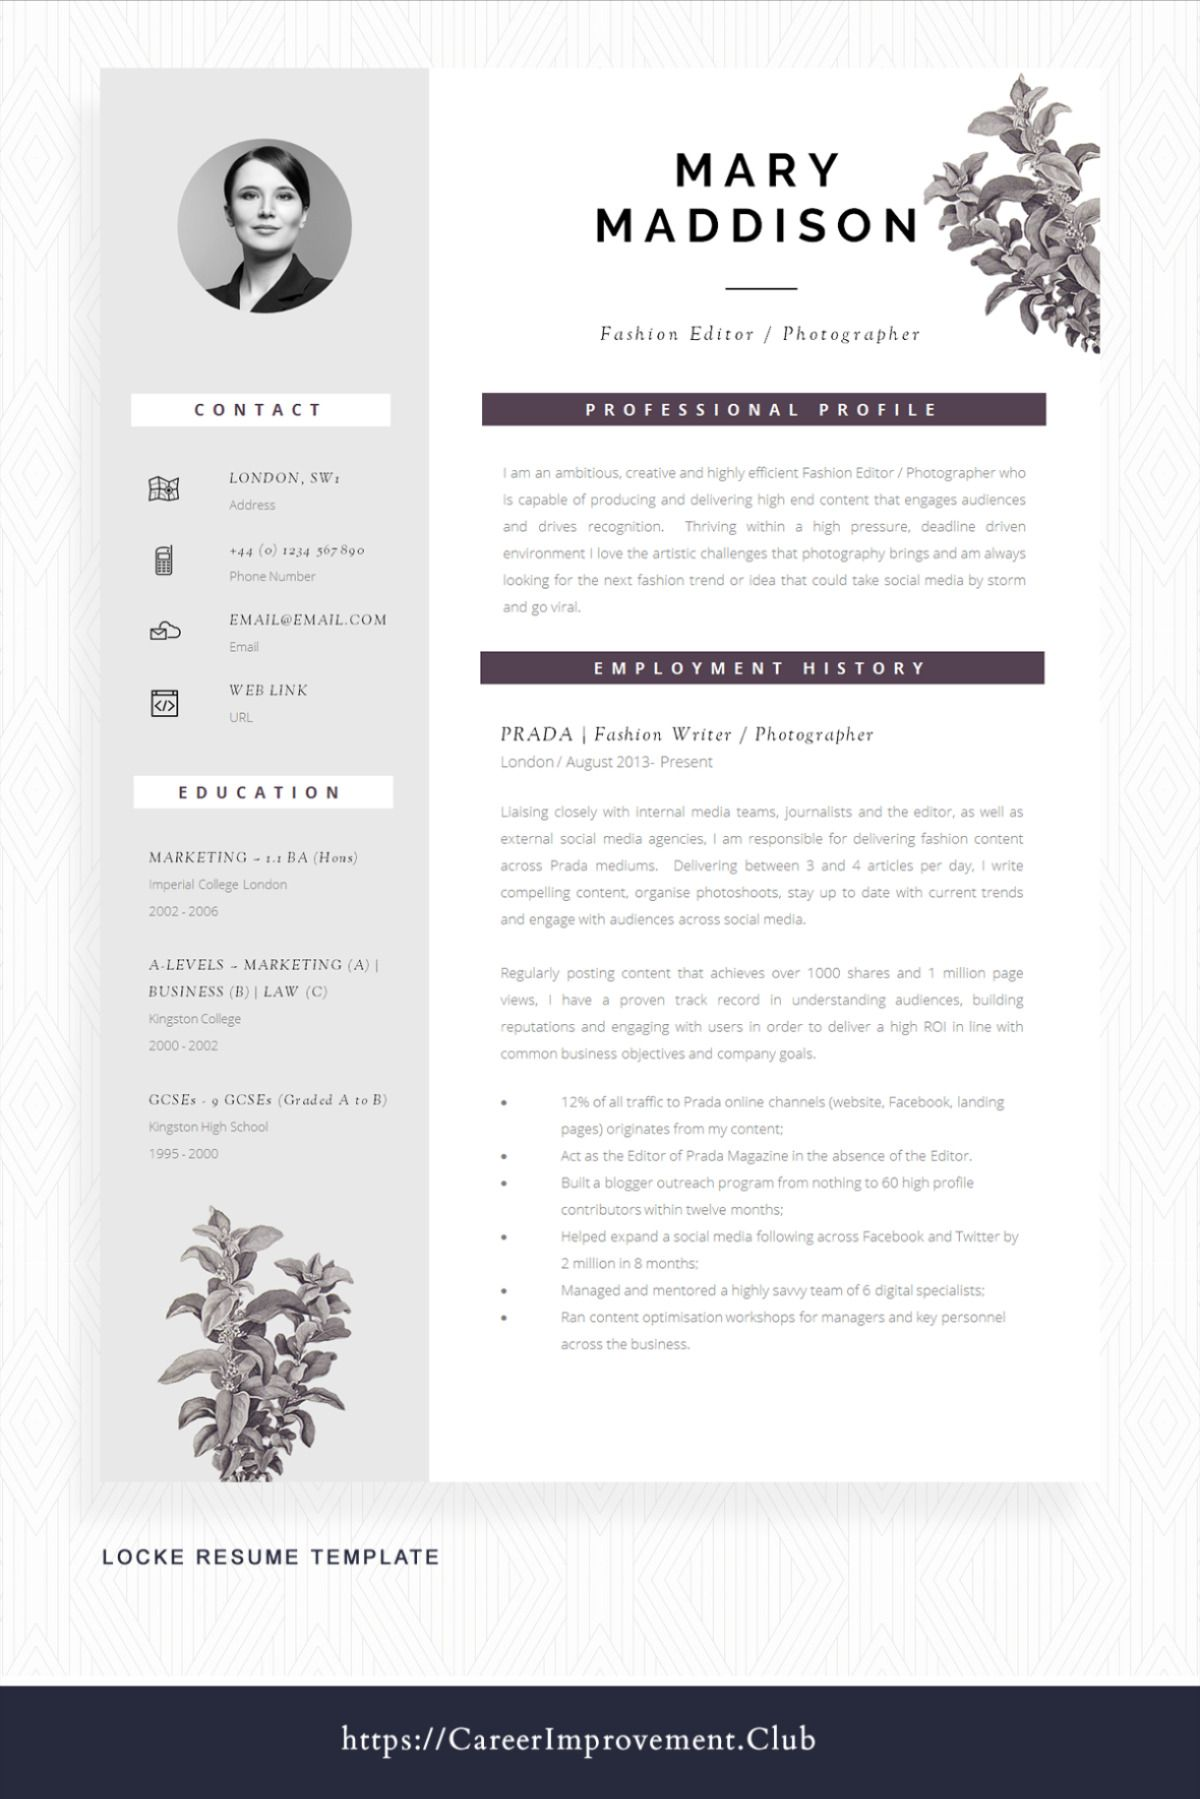 Professional Cv Design For Word Cover Letter Resume Advice Instant Download Mac Or Pc Resume Design Locke Cv Design Professional Cv Design Resume Design